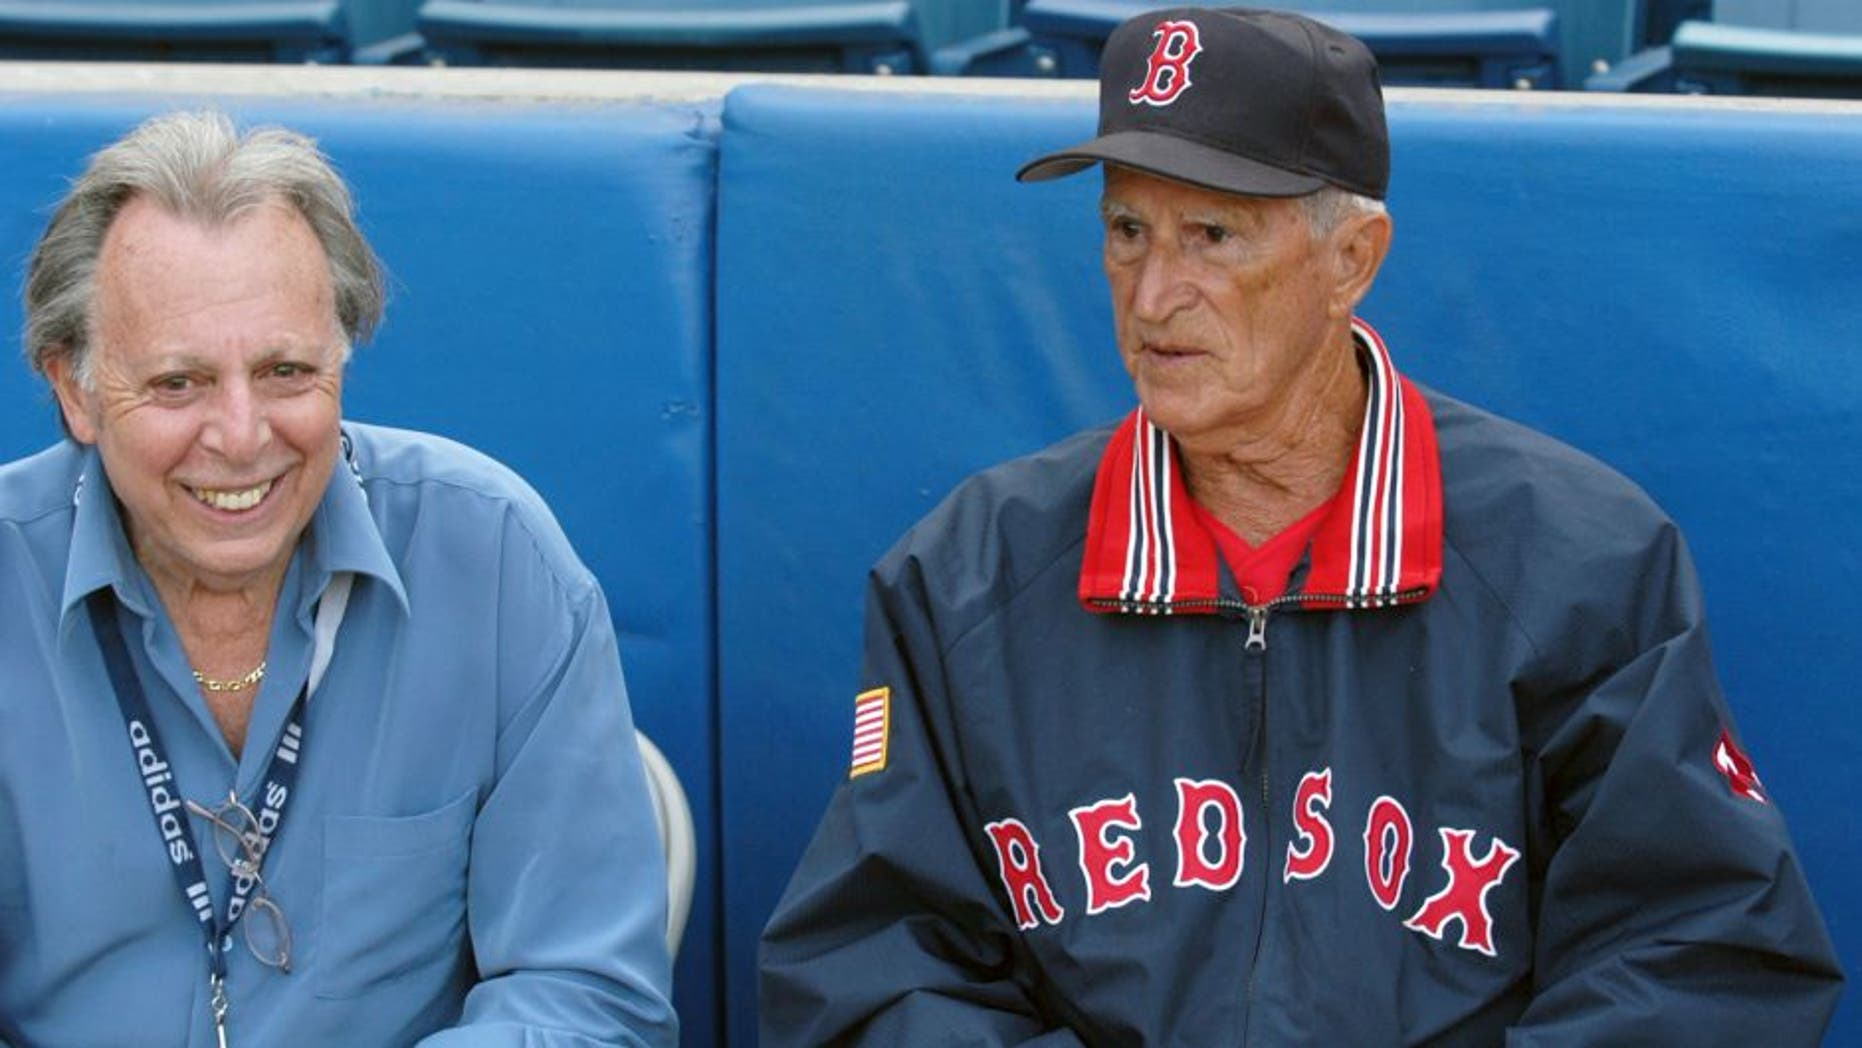 TAMPA, FL - MARCH 24: (L to R) Writer Phil Pepe speaks with former shortstop and coach Johnny Pesky, of the Boston Red Sox, prior to a Spring Training game on March 24, 2004 against the New York Yankees at Legends Field in Tampa, Florida. (Photo by: Diamond Images/Getty Images)